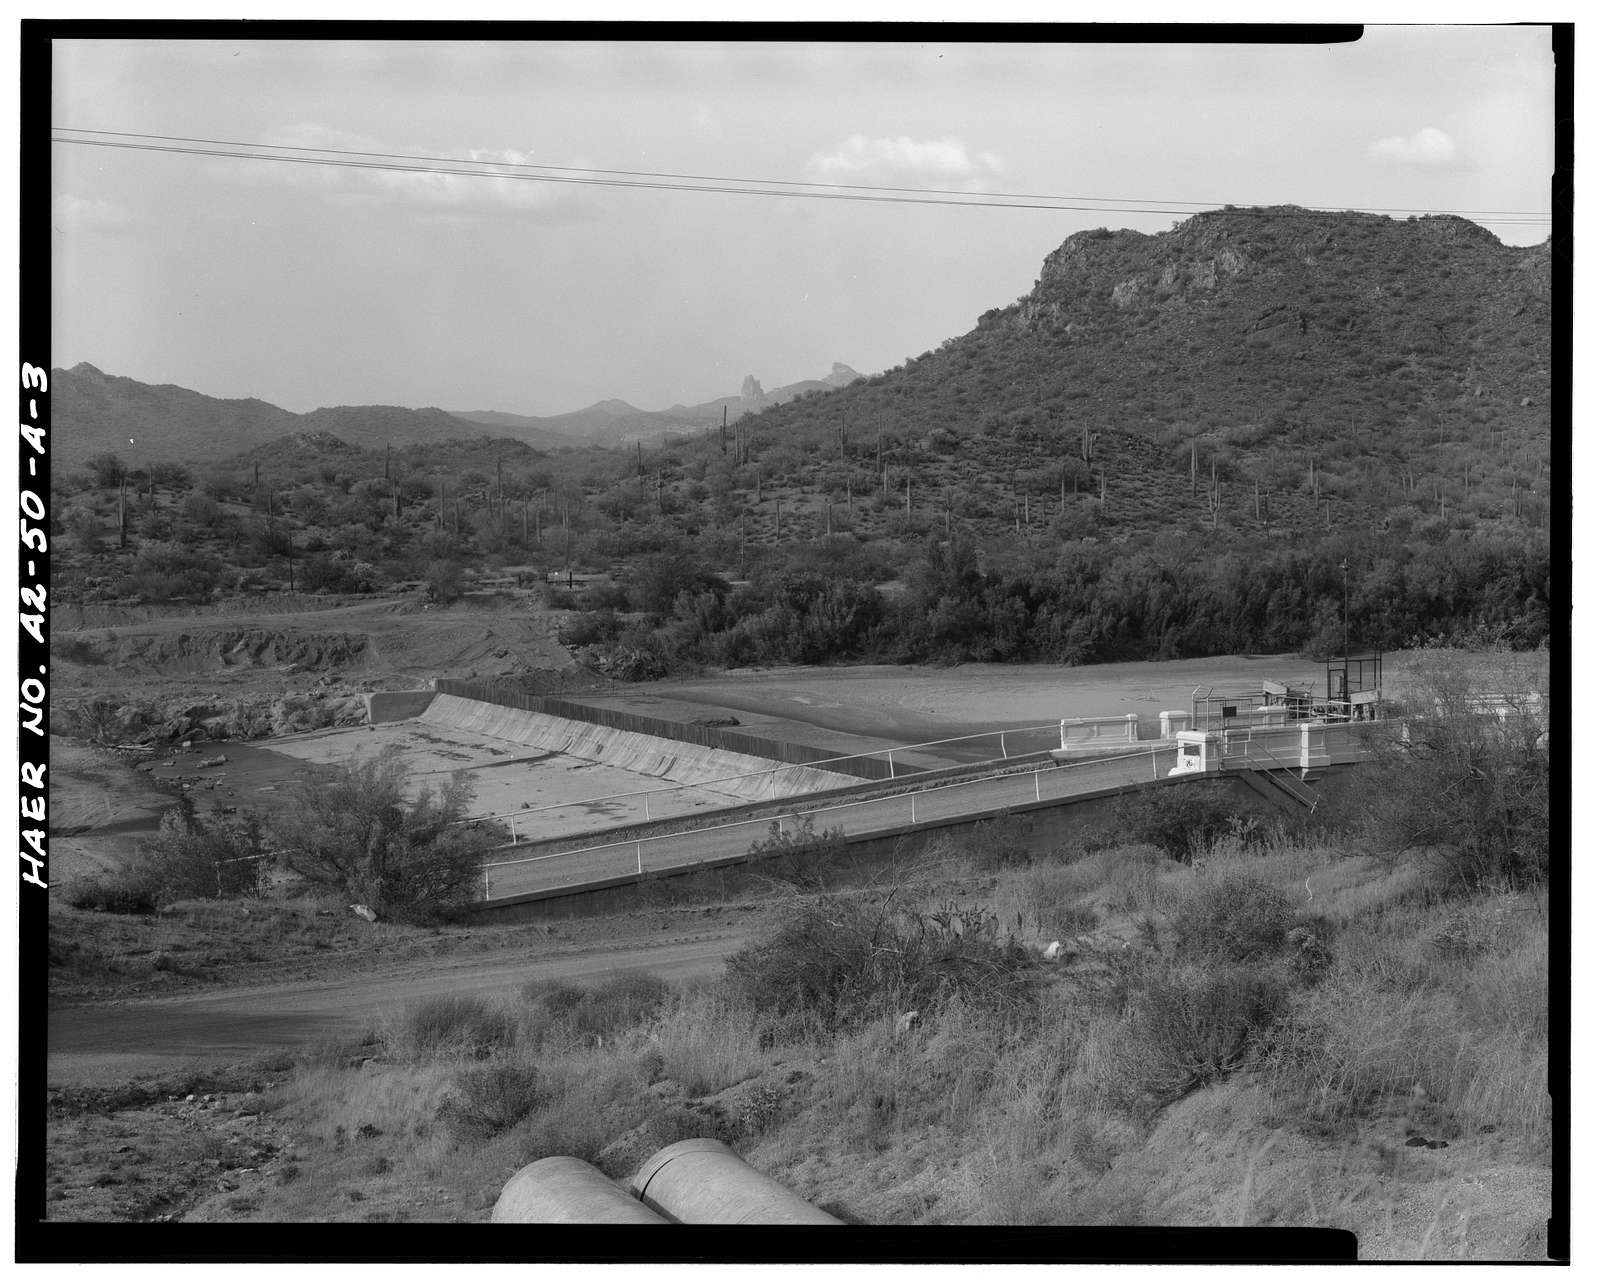 San Carlos Irrigation Project, Ashurst-Hayden Dam, Gila River, T4S R11E S7, Coolidge, Pinal County, AZ